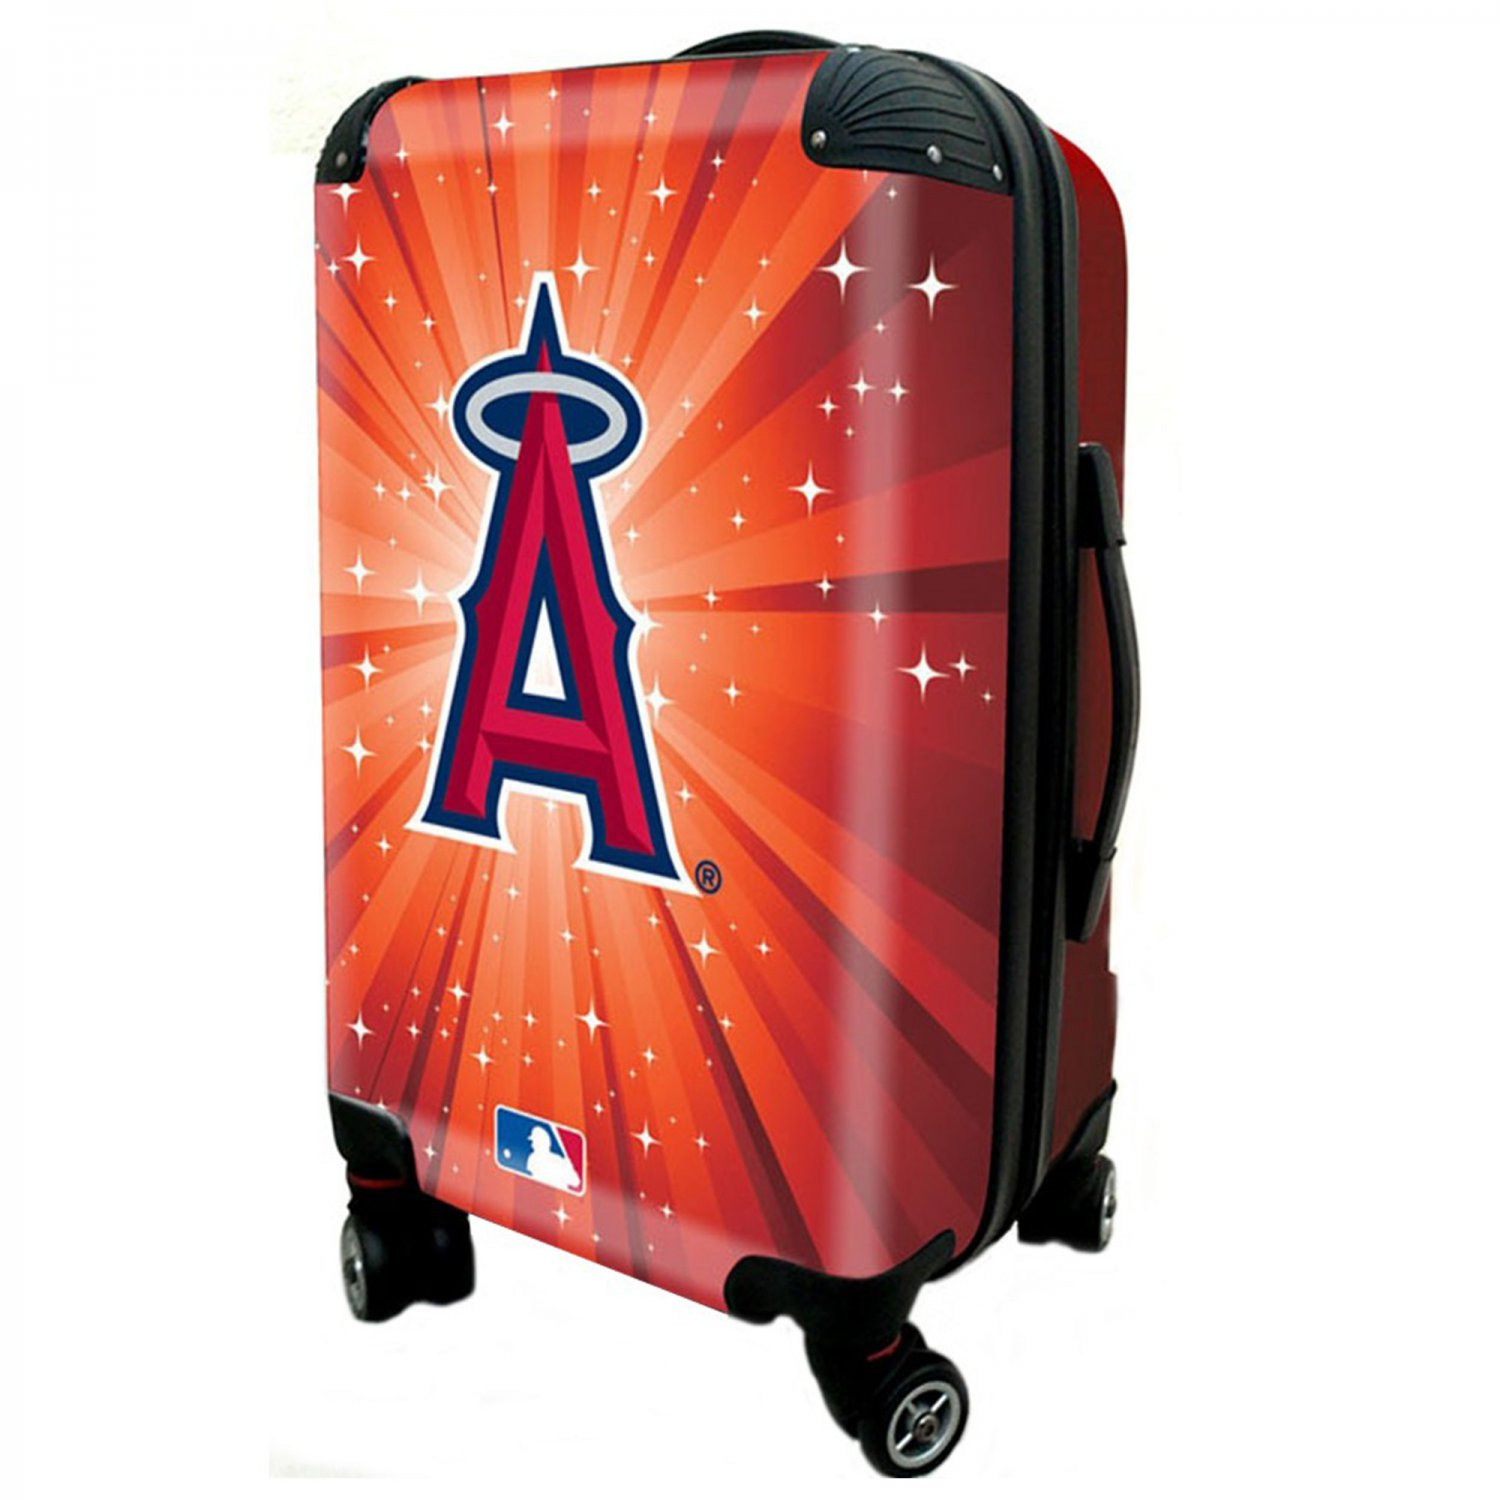 "Los Angeles Angels, 21"" Clear Poly Carry-On Luggage by Kaybull #LAA13"